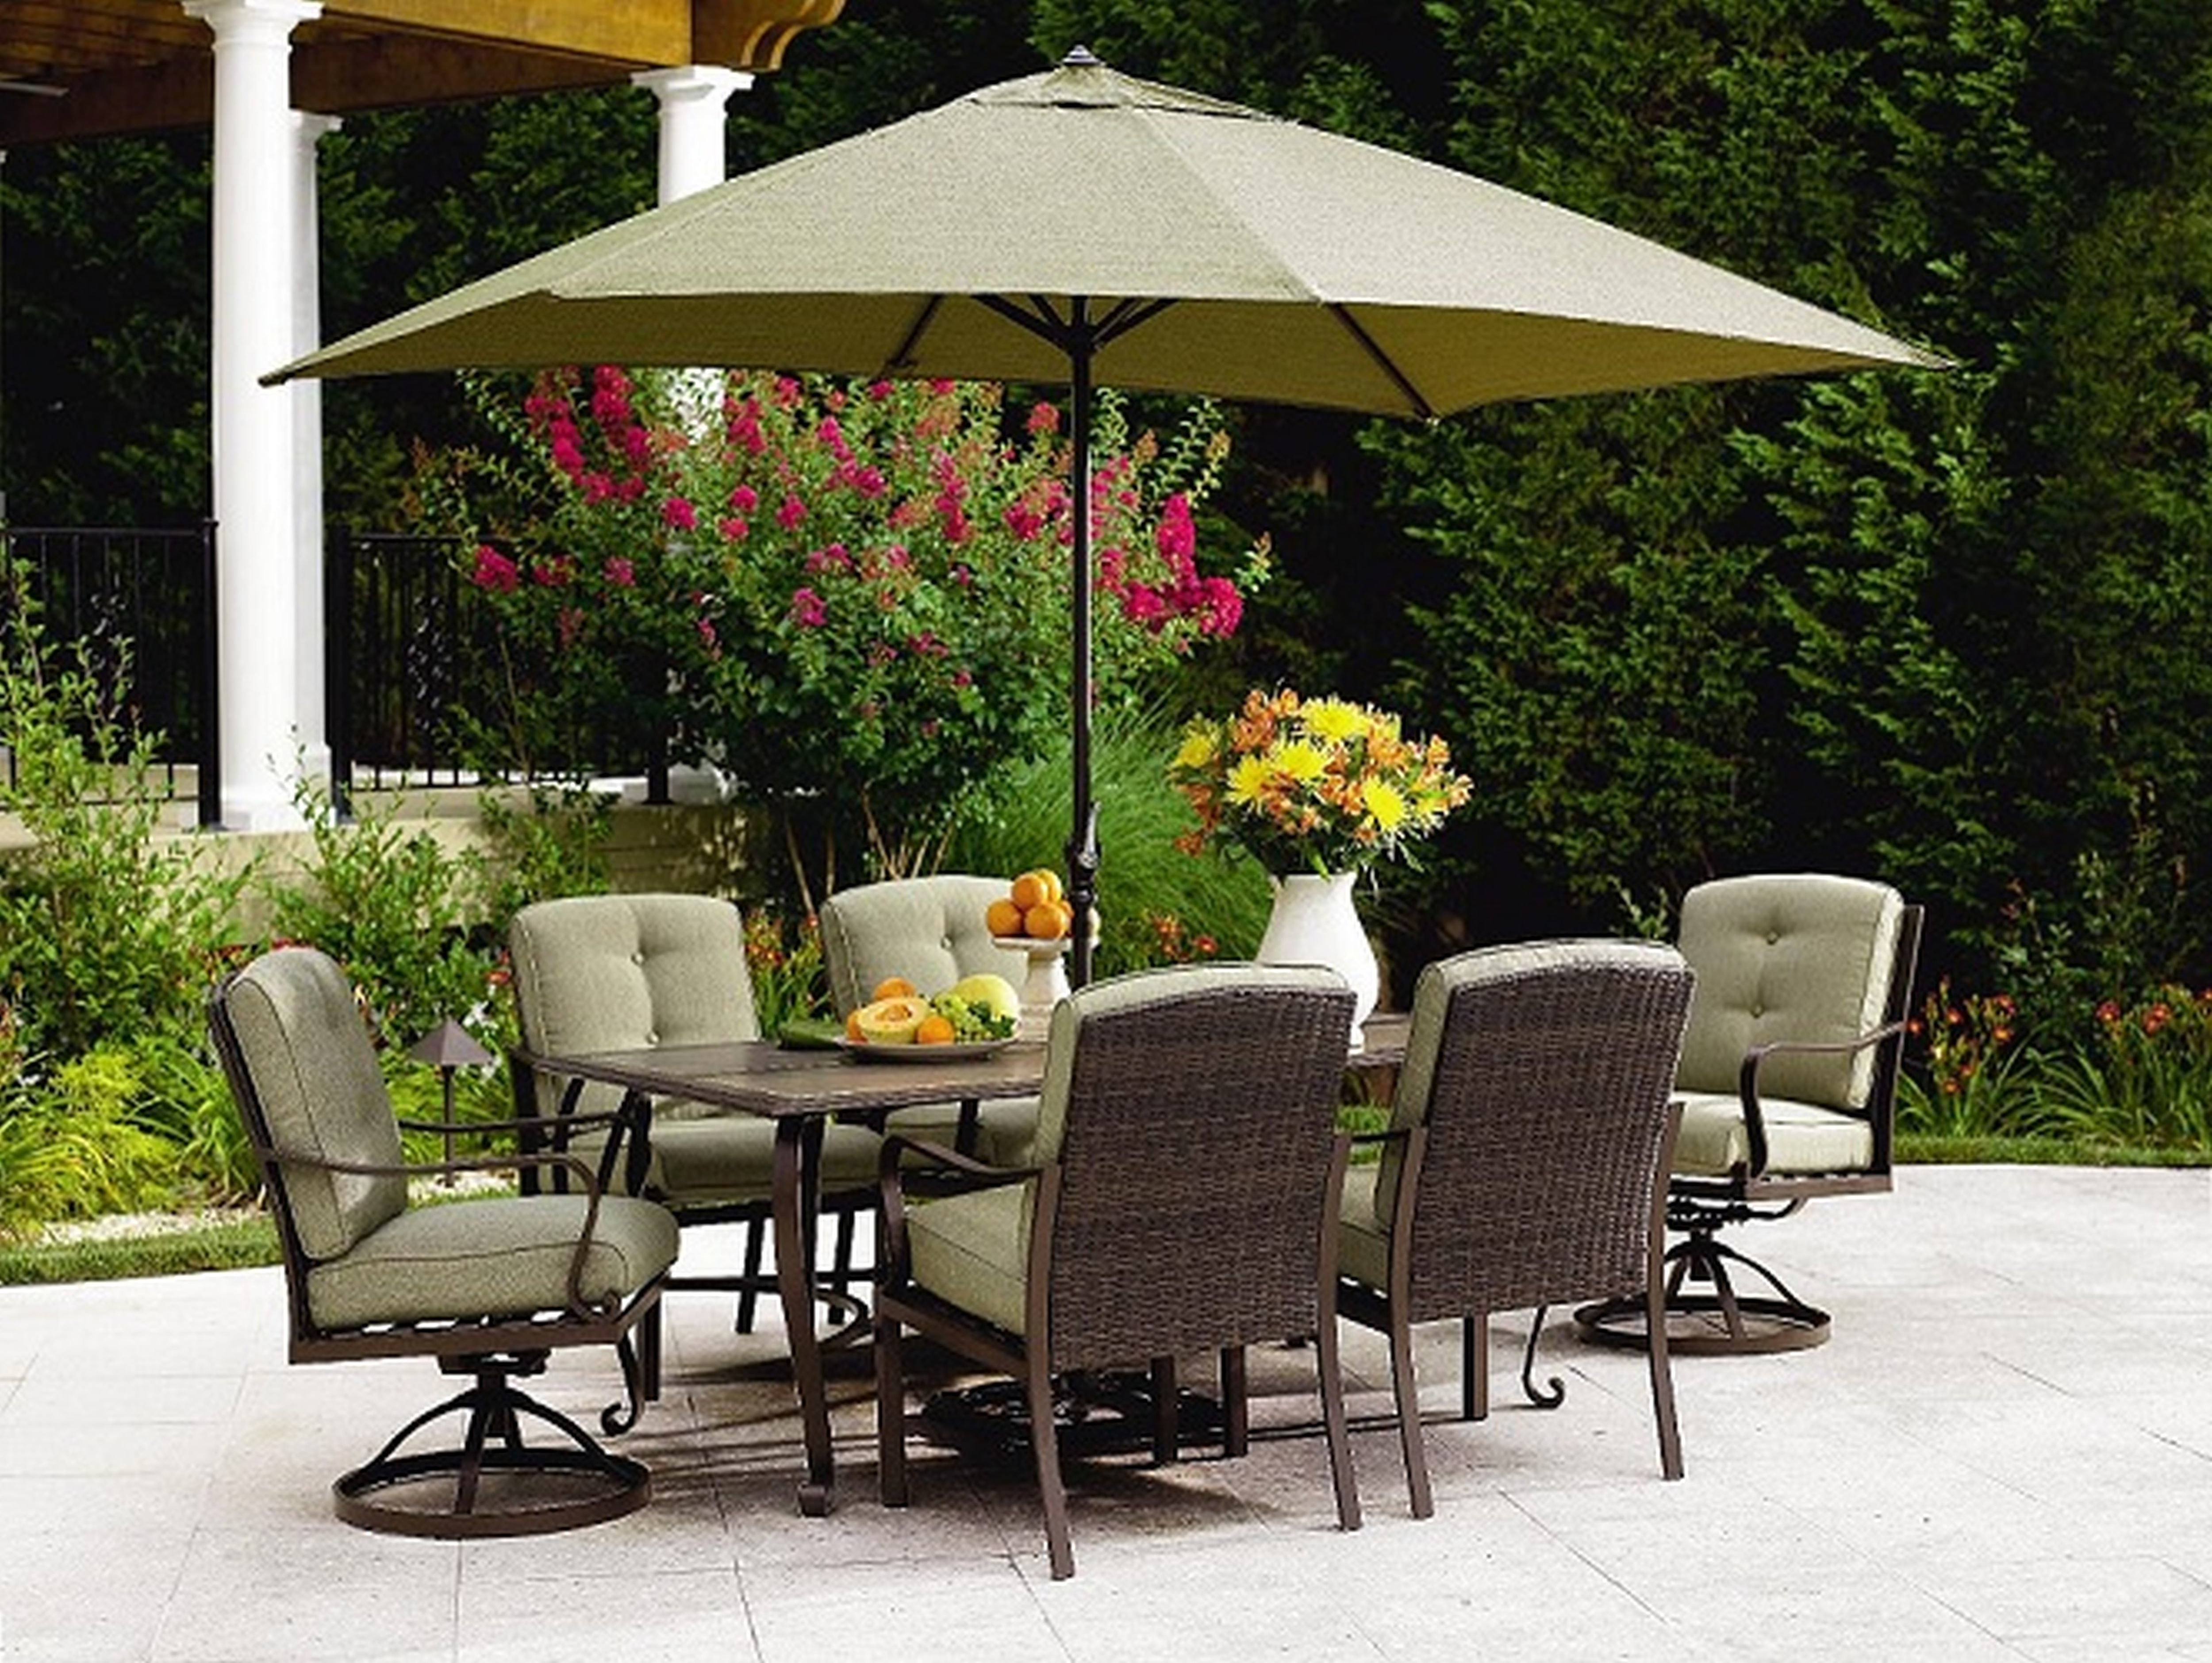 Patio Dining Umbrellas With Regard To Most Recent 38 Small Patio Table With Umbrella, Furniture: Patio Chairs That (View 11 of 20)